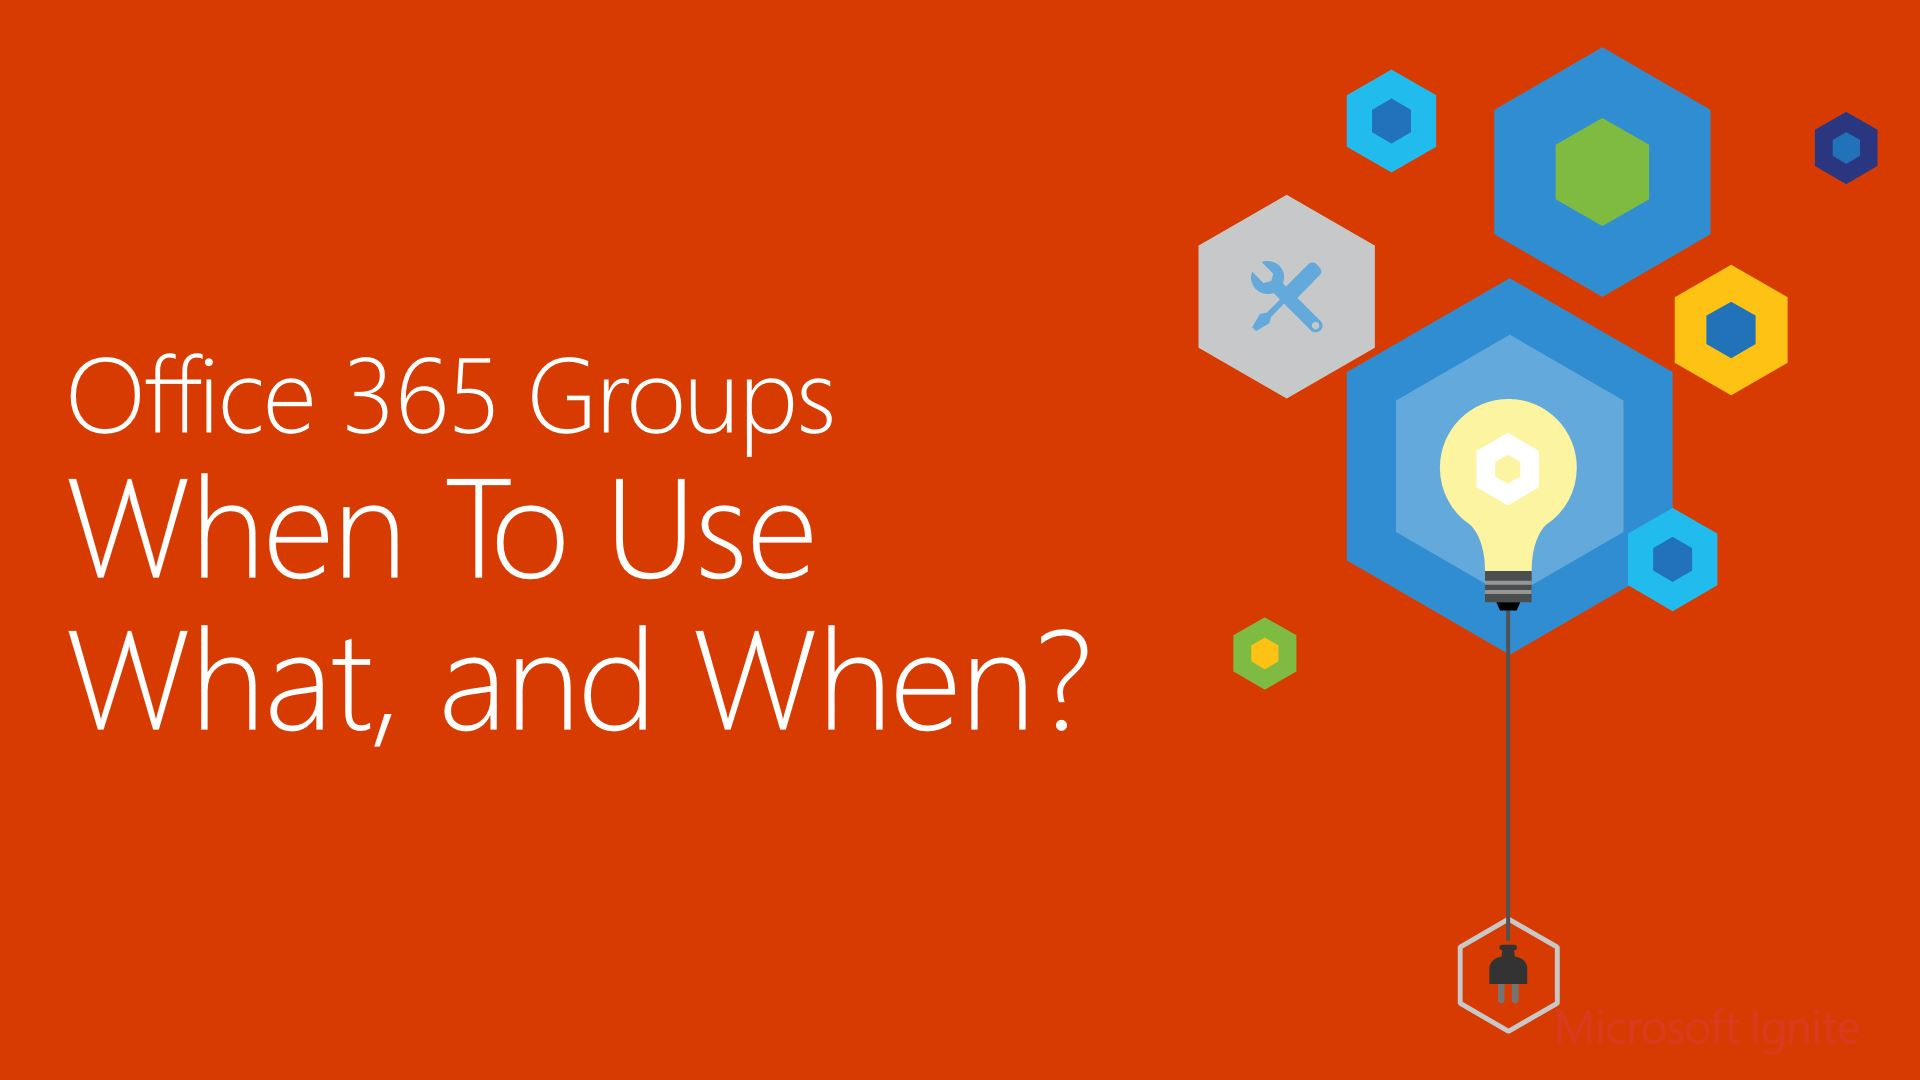 Office 365 Groups when to use what, and when